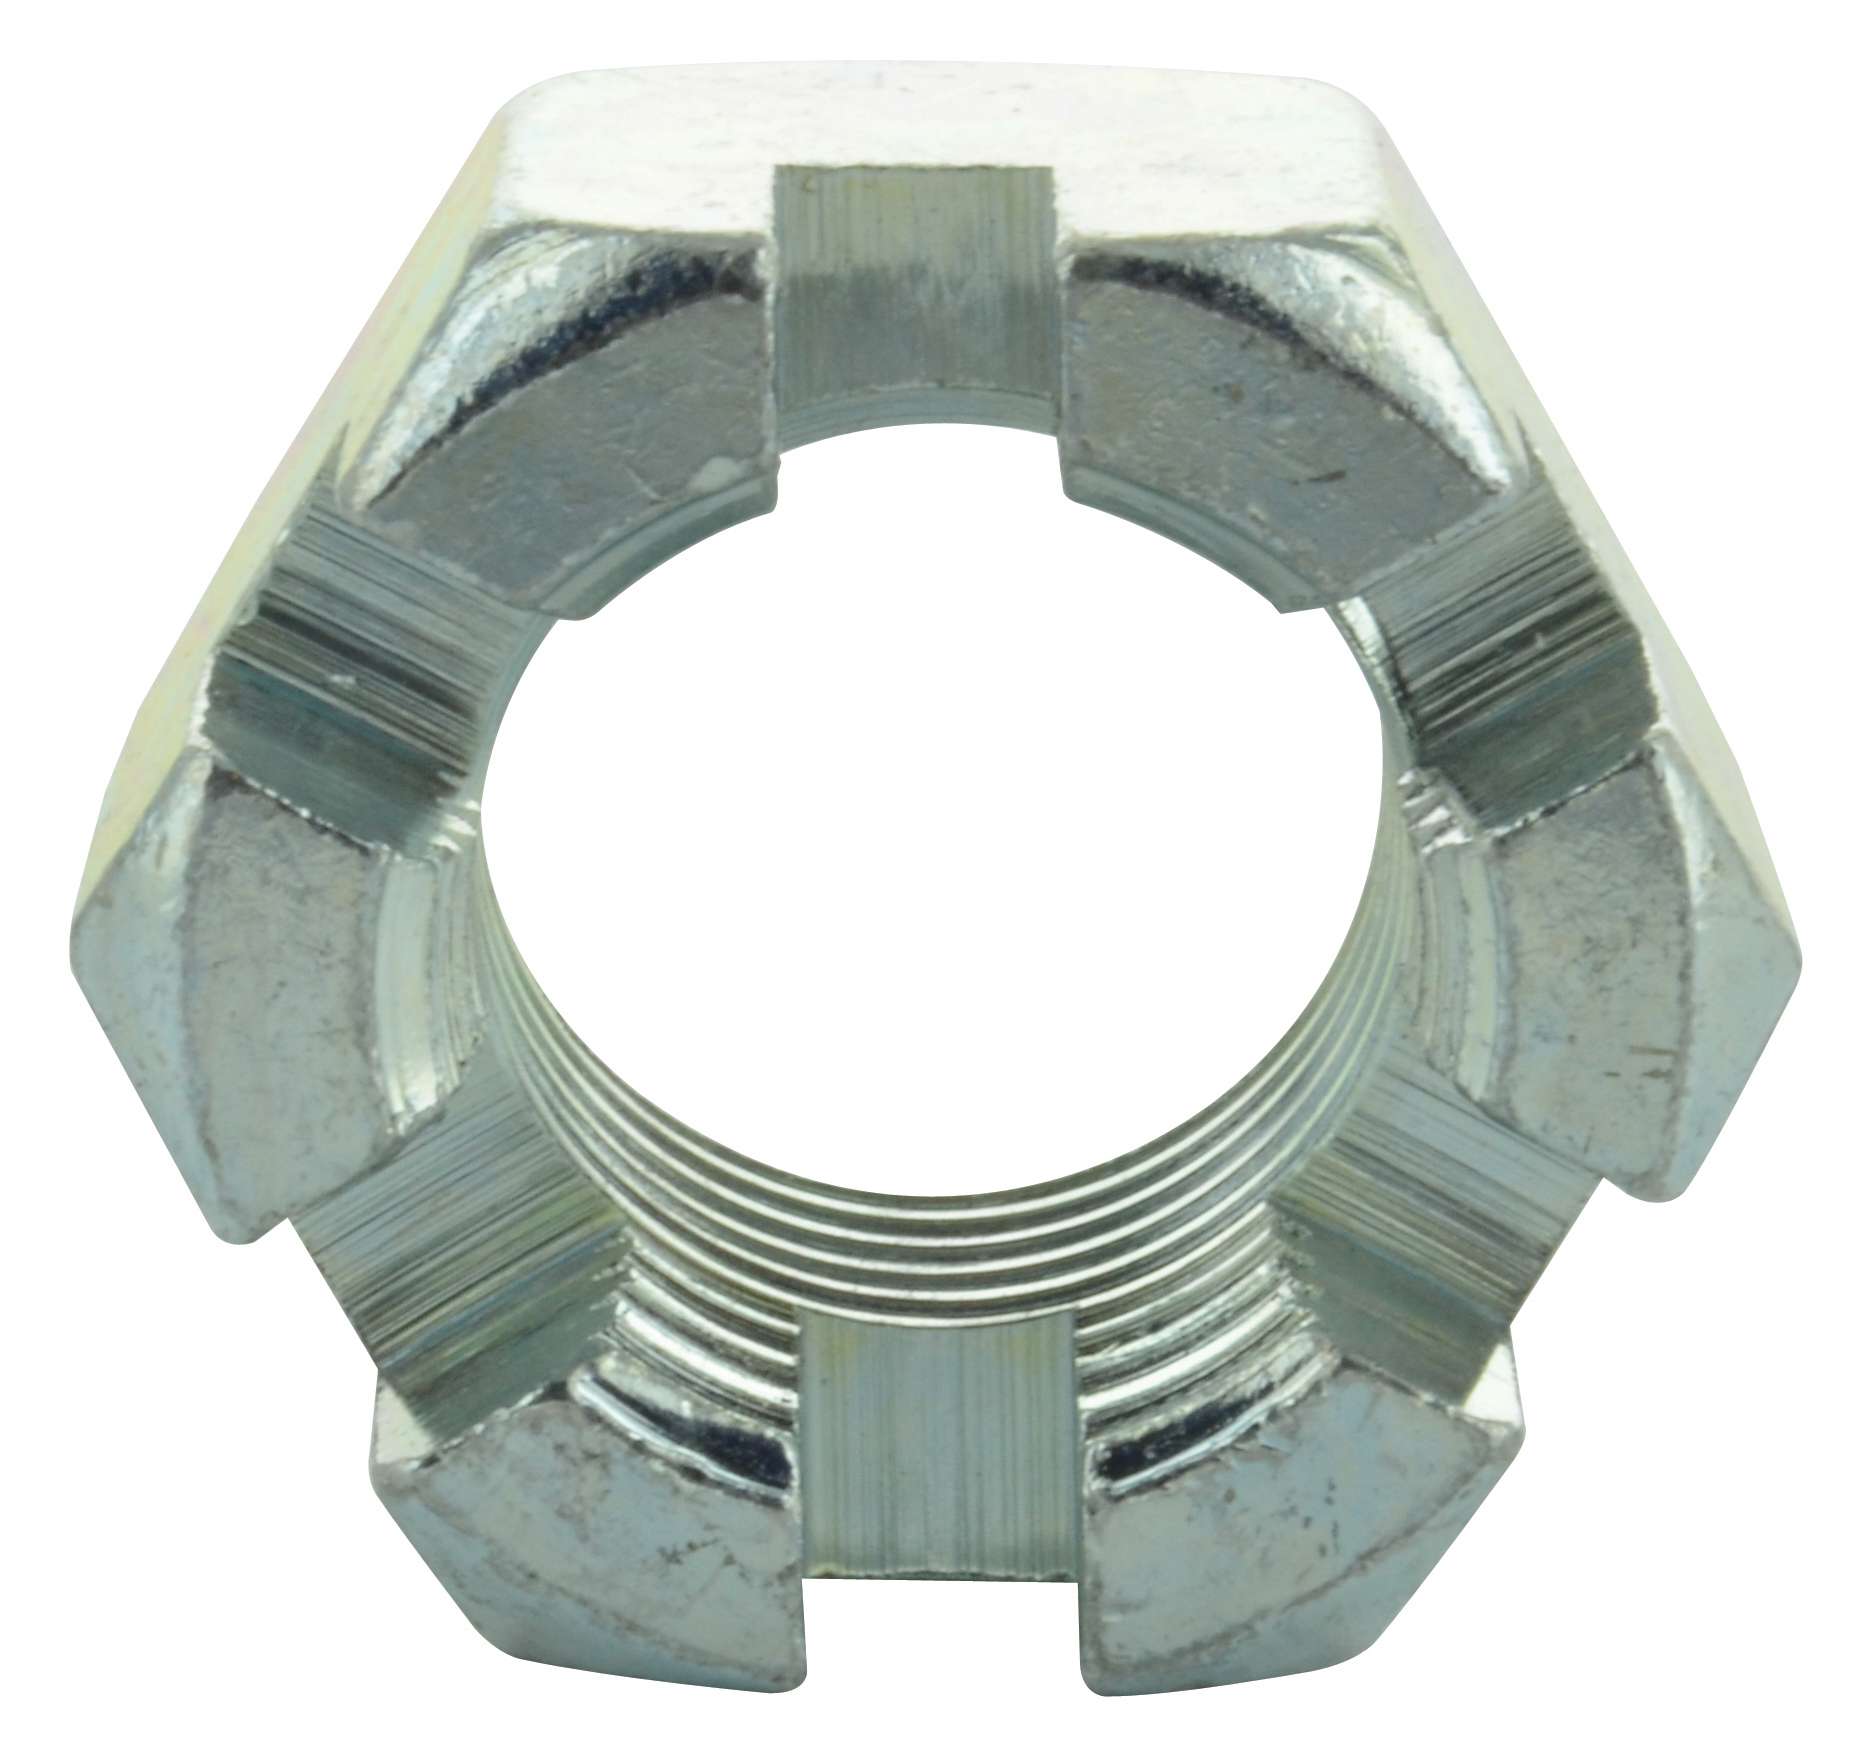 1-1/2-6 Coarse Zinc Plated Grade 2 Slotted Hex Nut